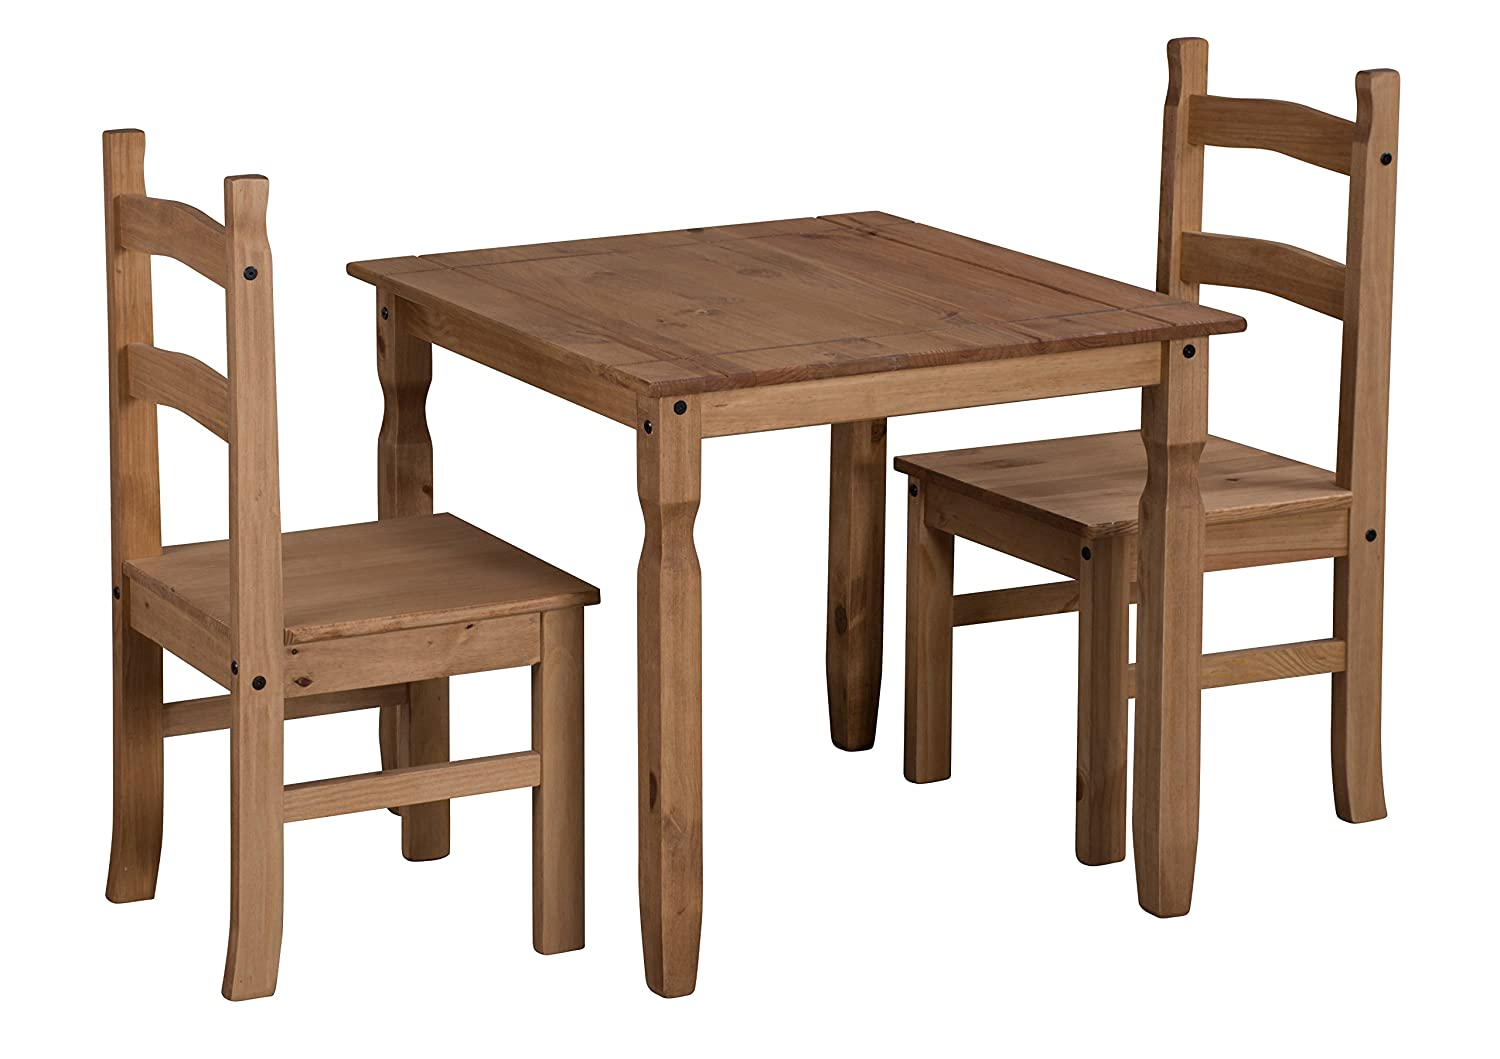 c3ee775902 Mercers Furniture Corona Rio Dining Table and 2 Chairs - Pine:  Amazon.co.uk: Kitchen & Home